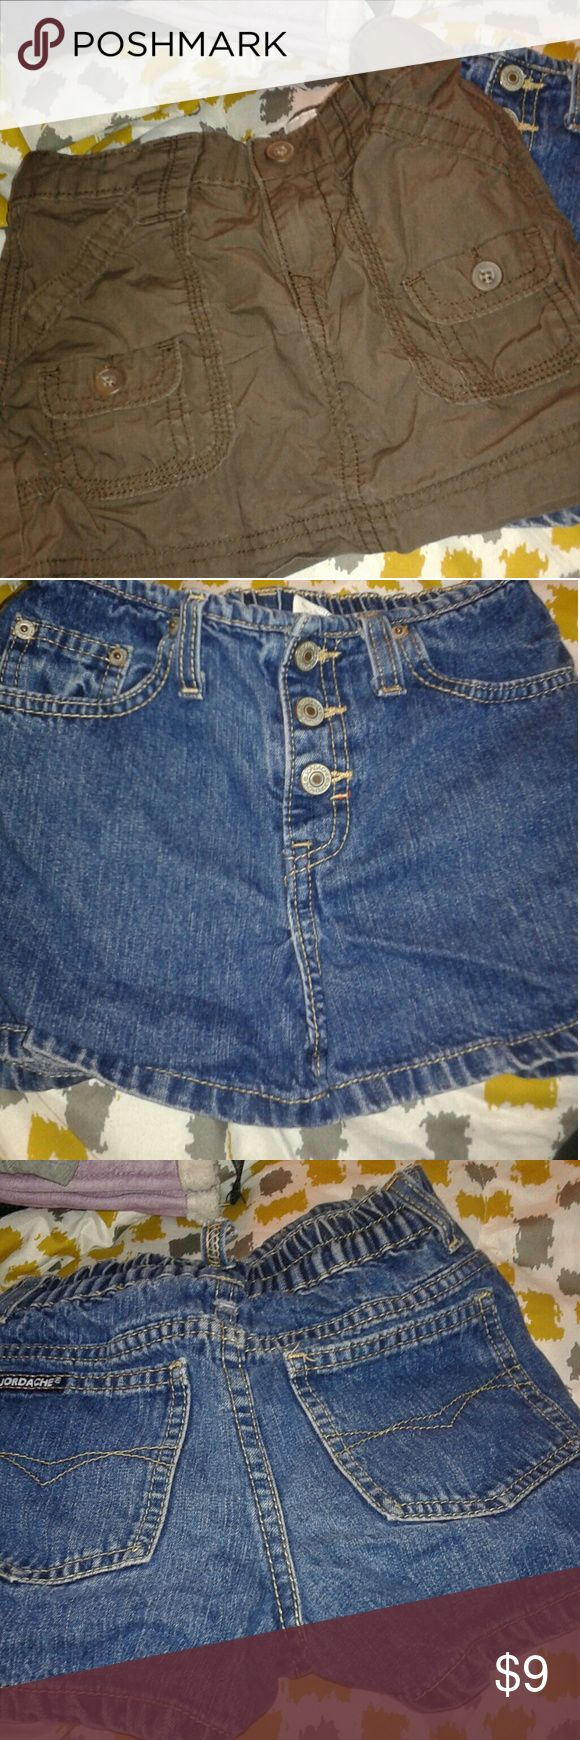 Skirt and shorts girls size 6 Jordache shorts Blue denim Size 6 And  Old navy Cargo skirt Brown color Size 6 Both good used condition Belt loop on shorts loose at rear Old Navy Bottoms Skirts